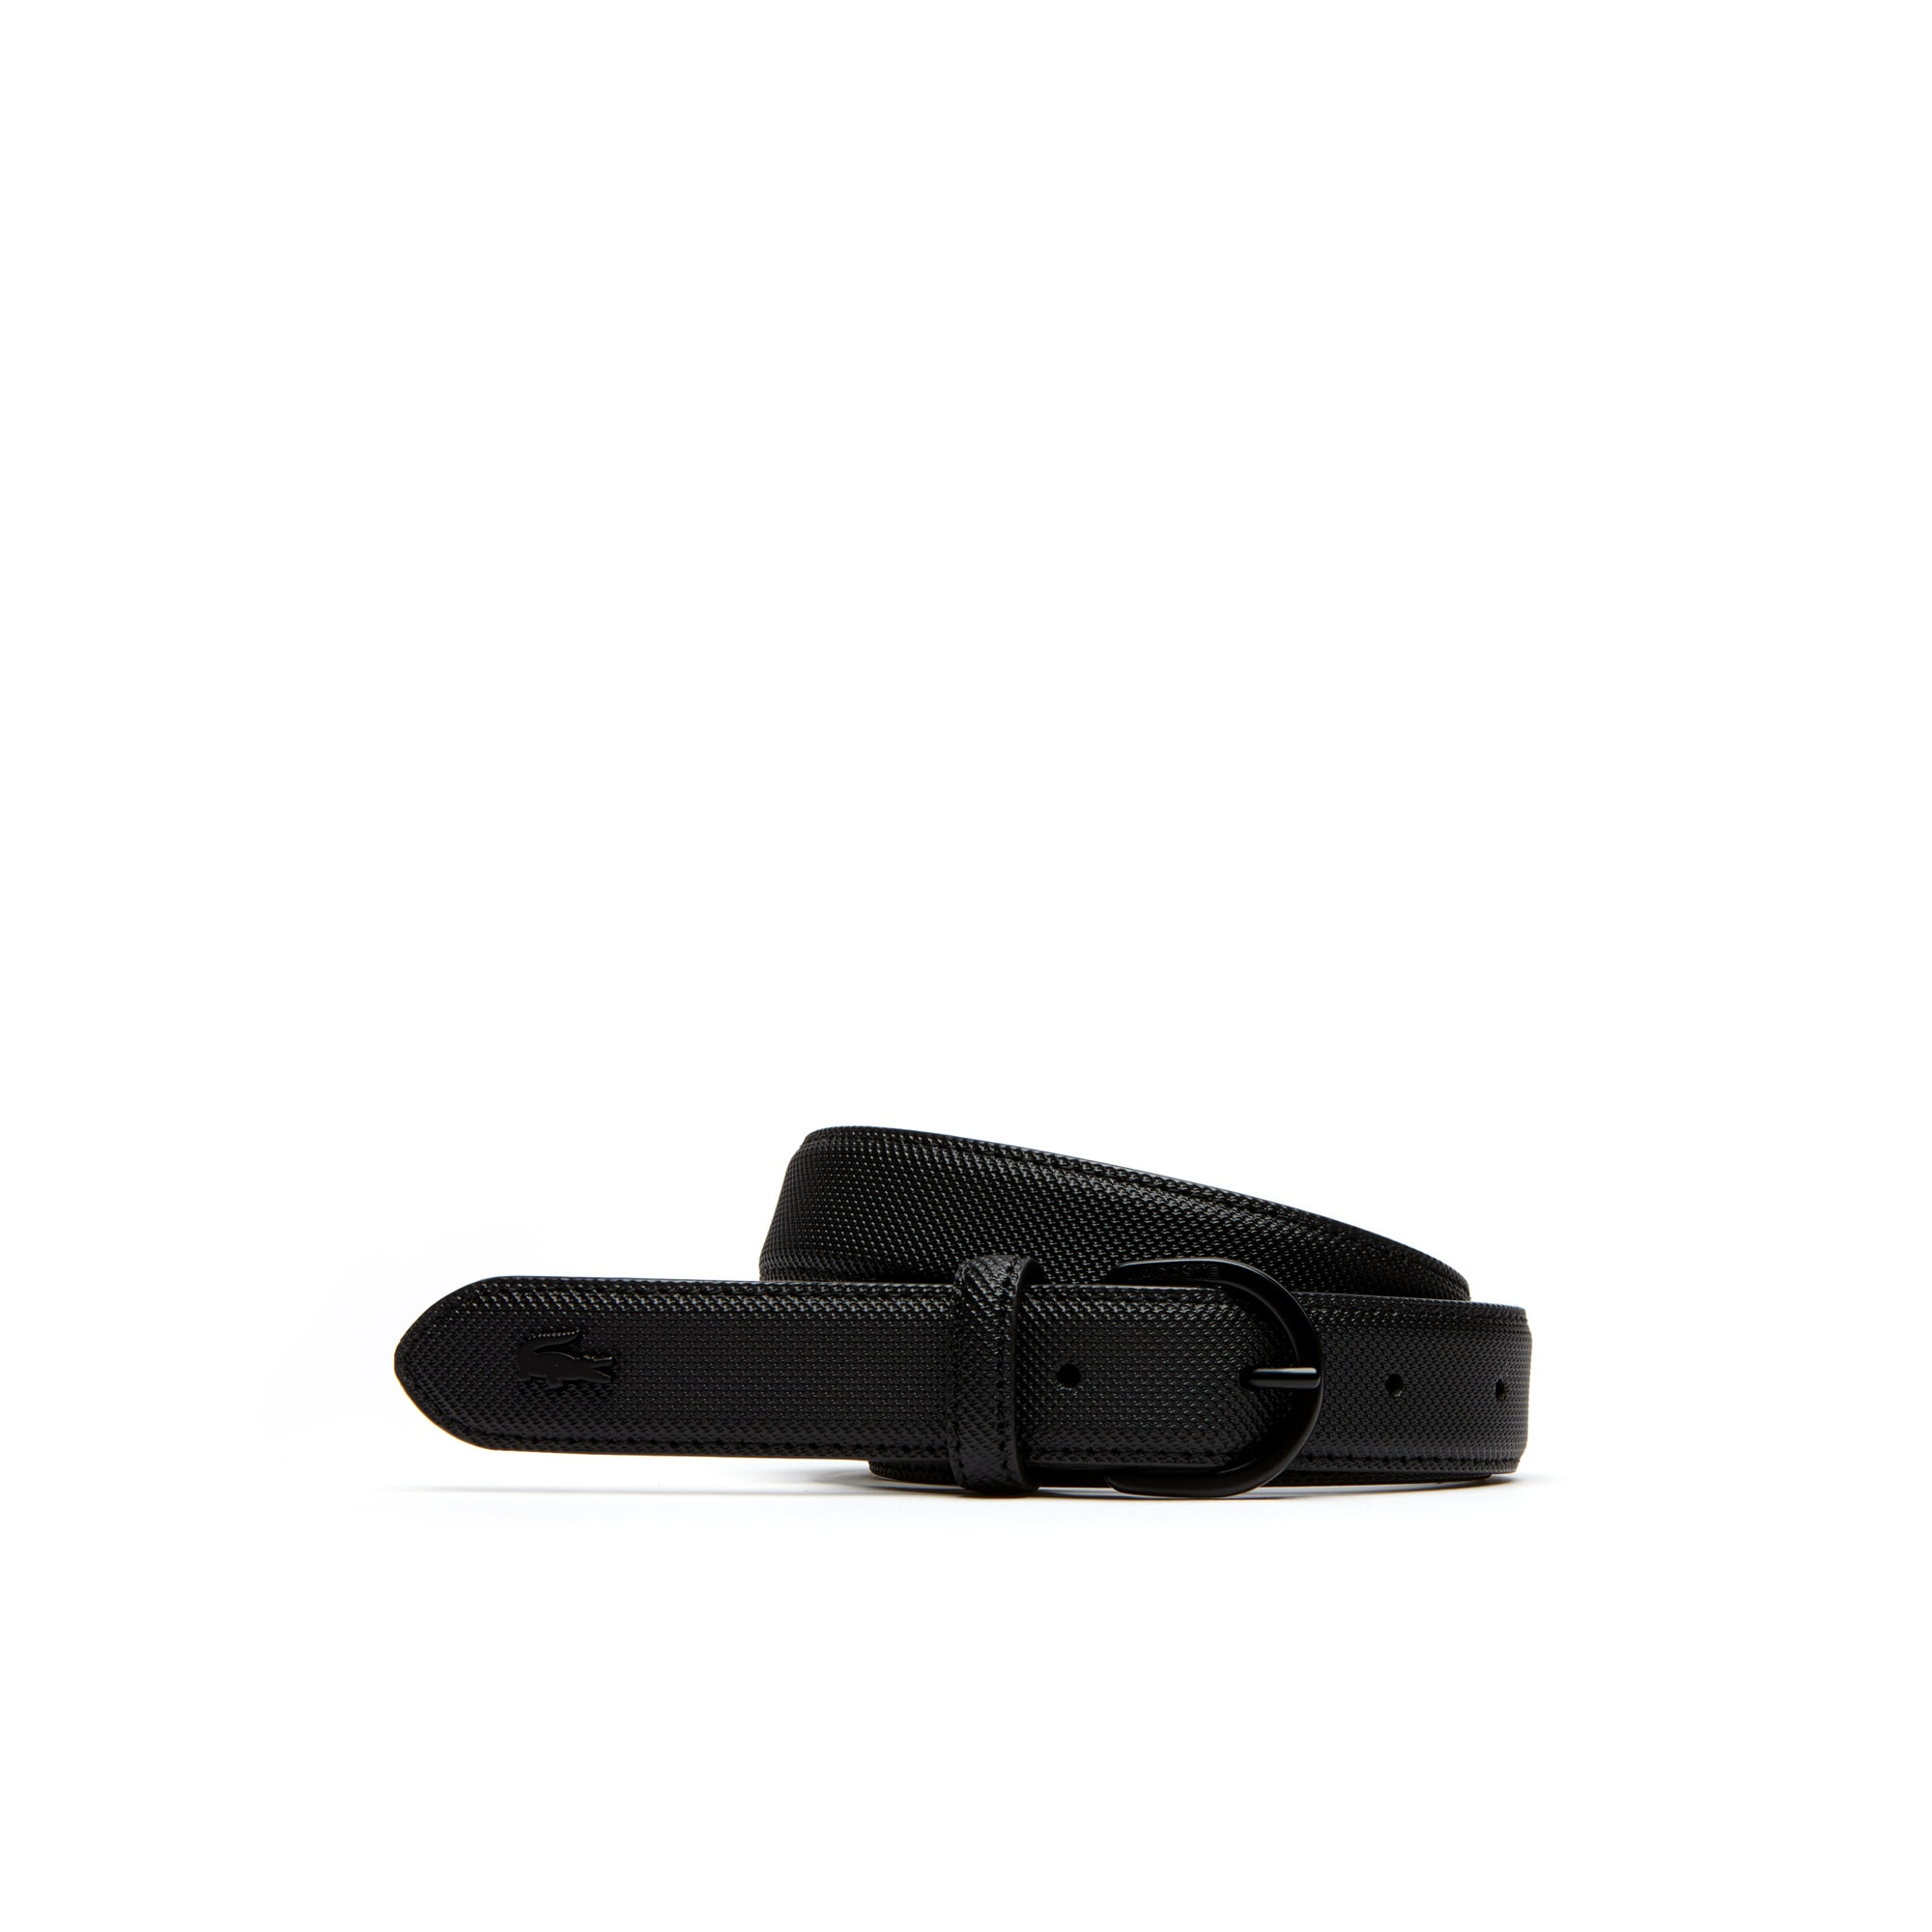 Women's L.12.12 Concept Monochrome Fine Piqué Belt With Tongue Buckle